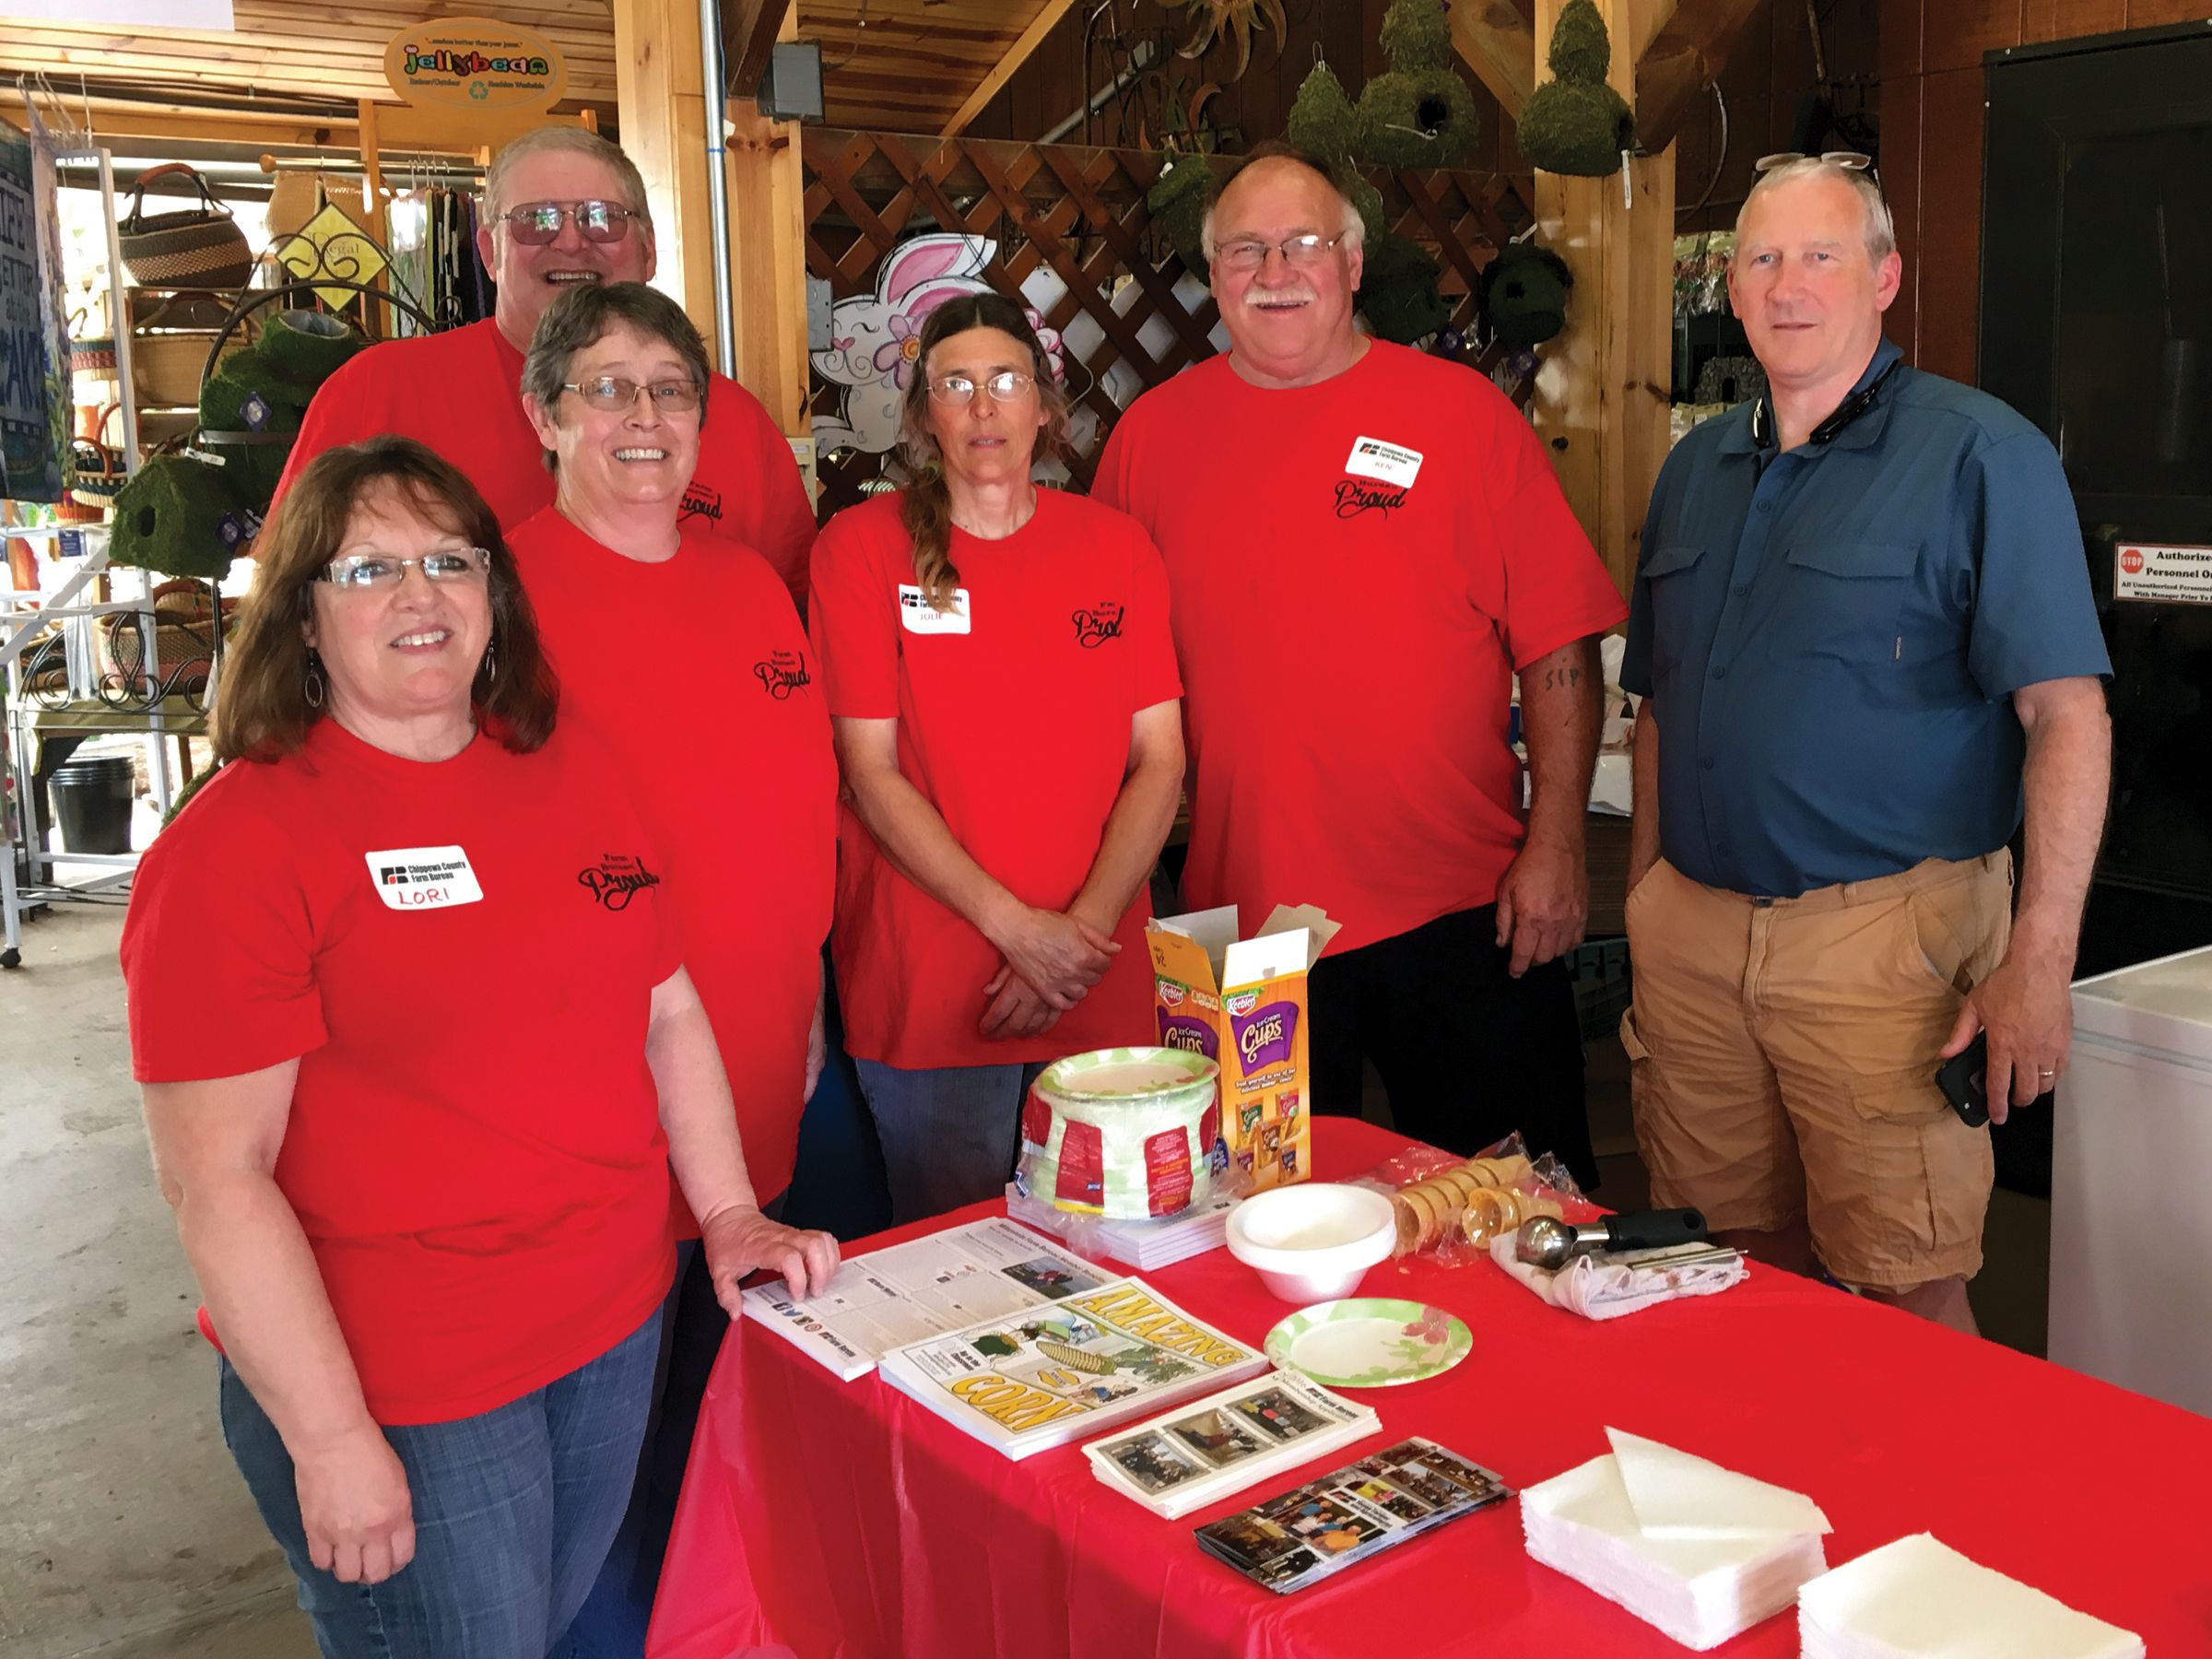 Chippewa County June Dairy Month Promotion On Saturday June 4